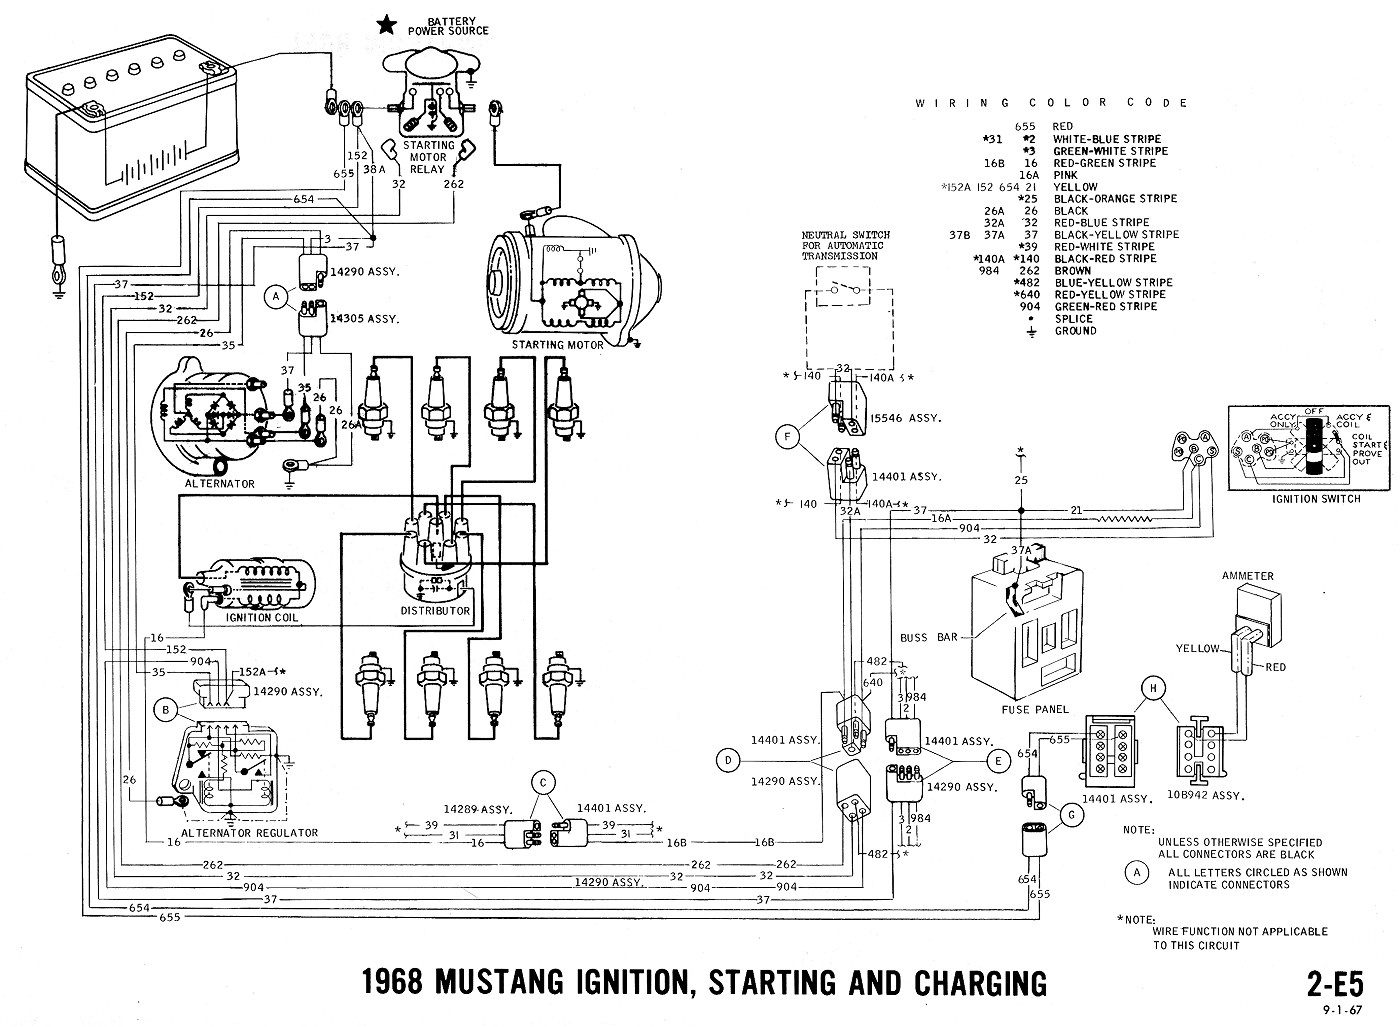 1968 mustang wiring diagrams evolving software rh peterfranza com 67 Mustang Color Charging System Diagram 1967 mustang alternator wiring diagram